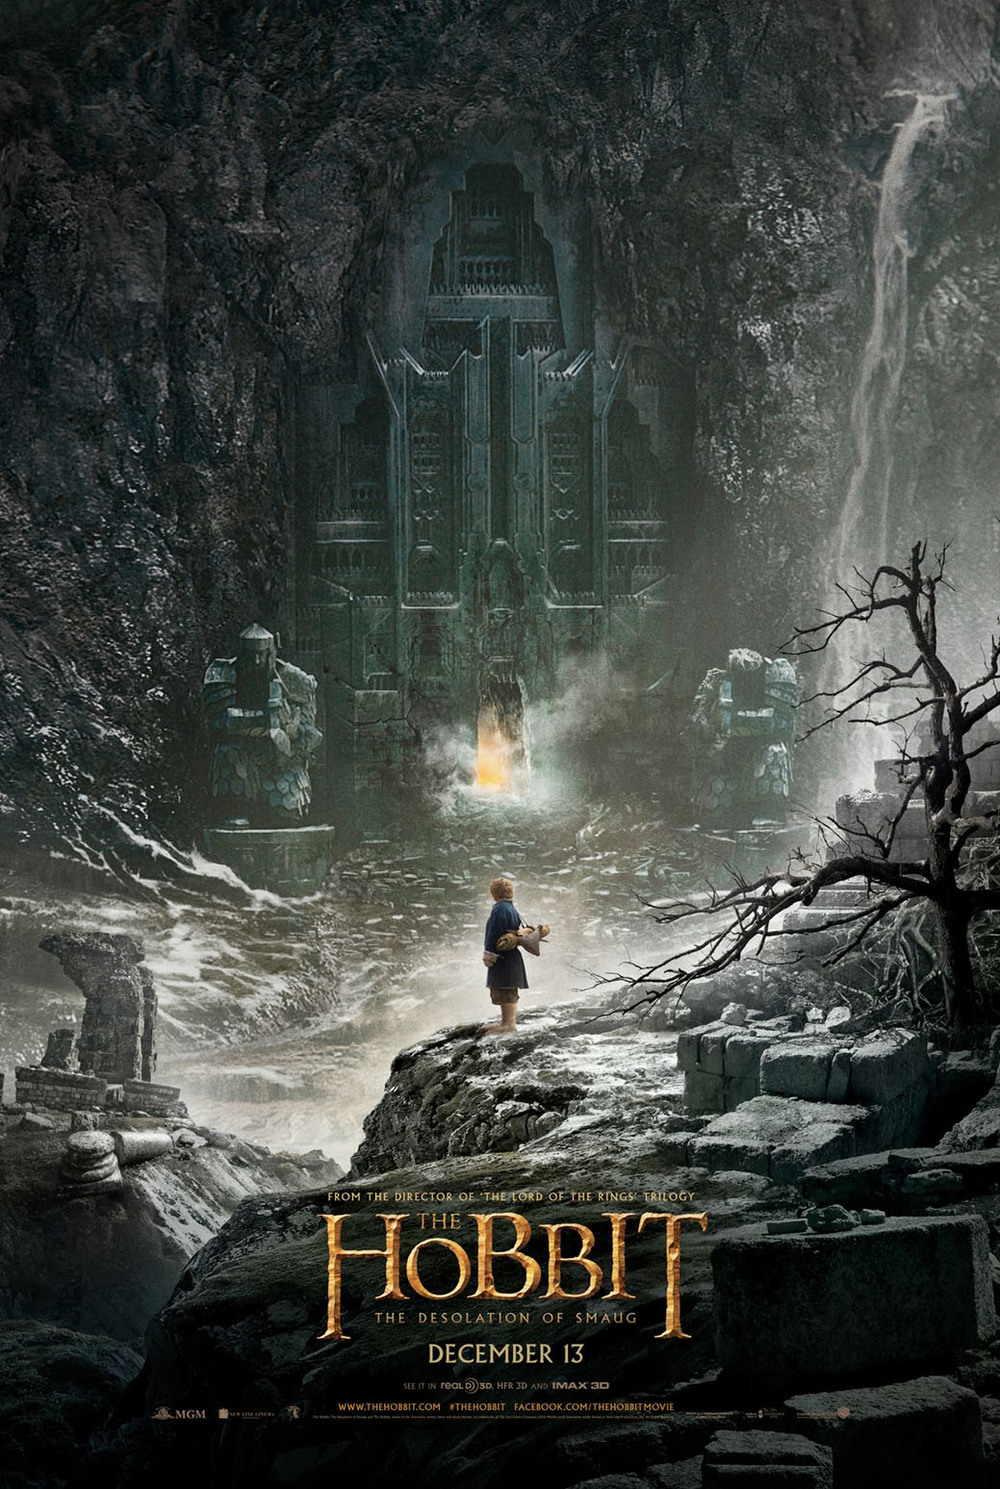 Poster_04_Hobbit_DesolationOfSmaug.jpg